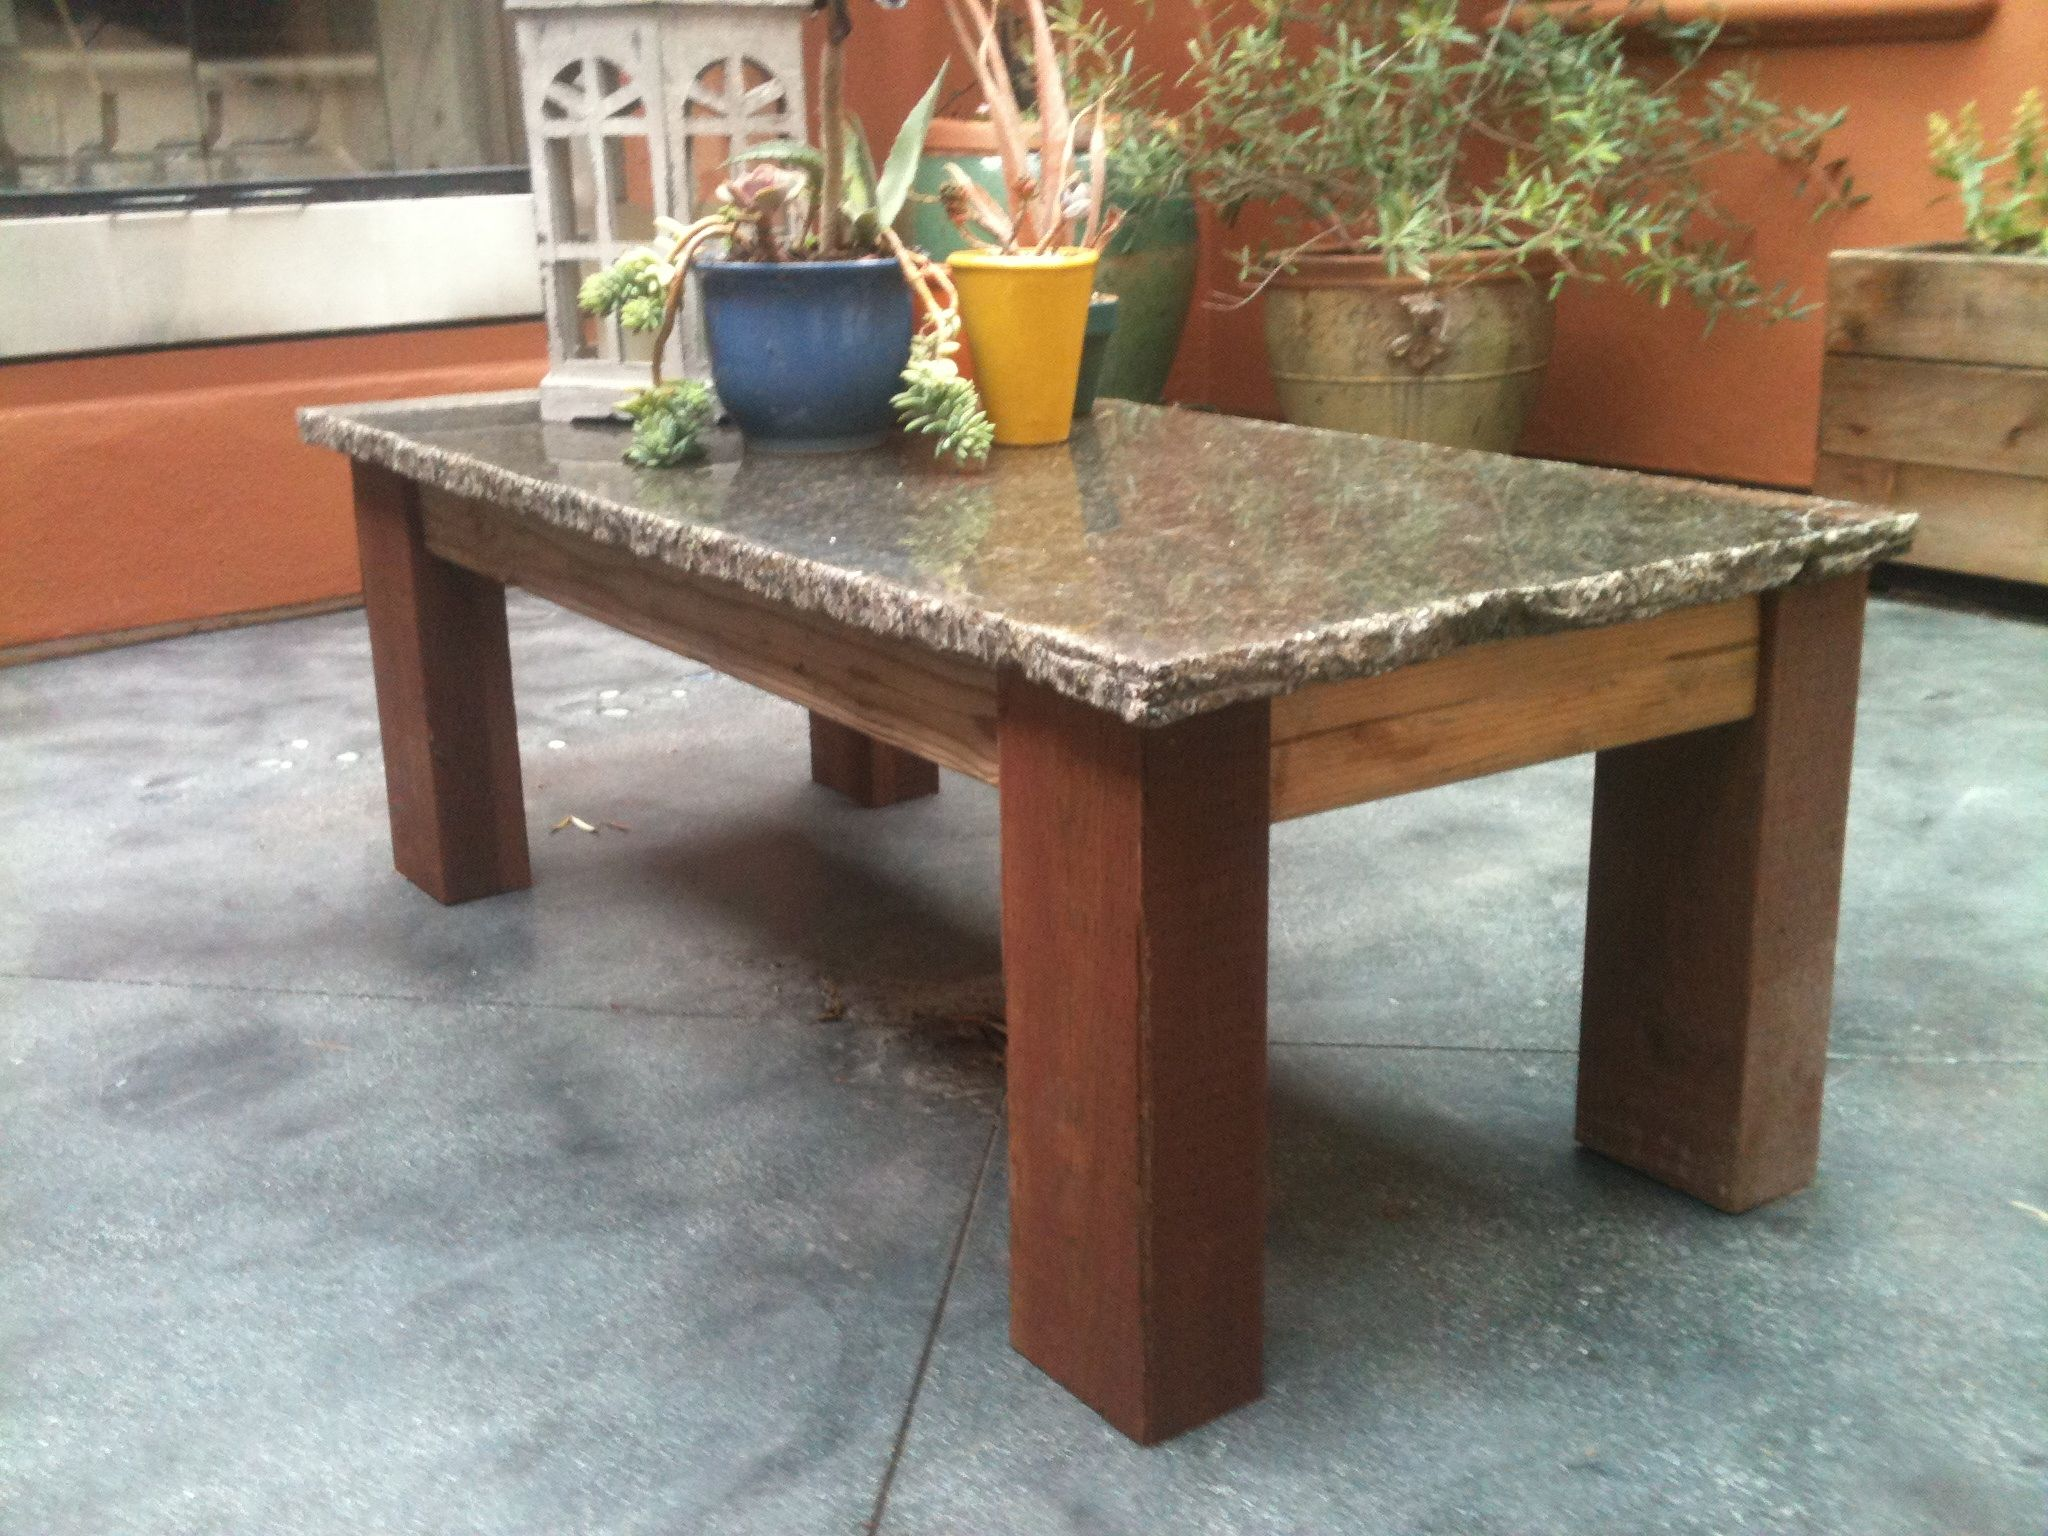 Remnant Granite Makes This Little Table Eye Catching At A Really Low Cost